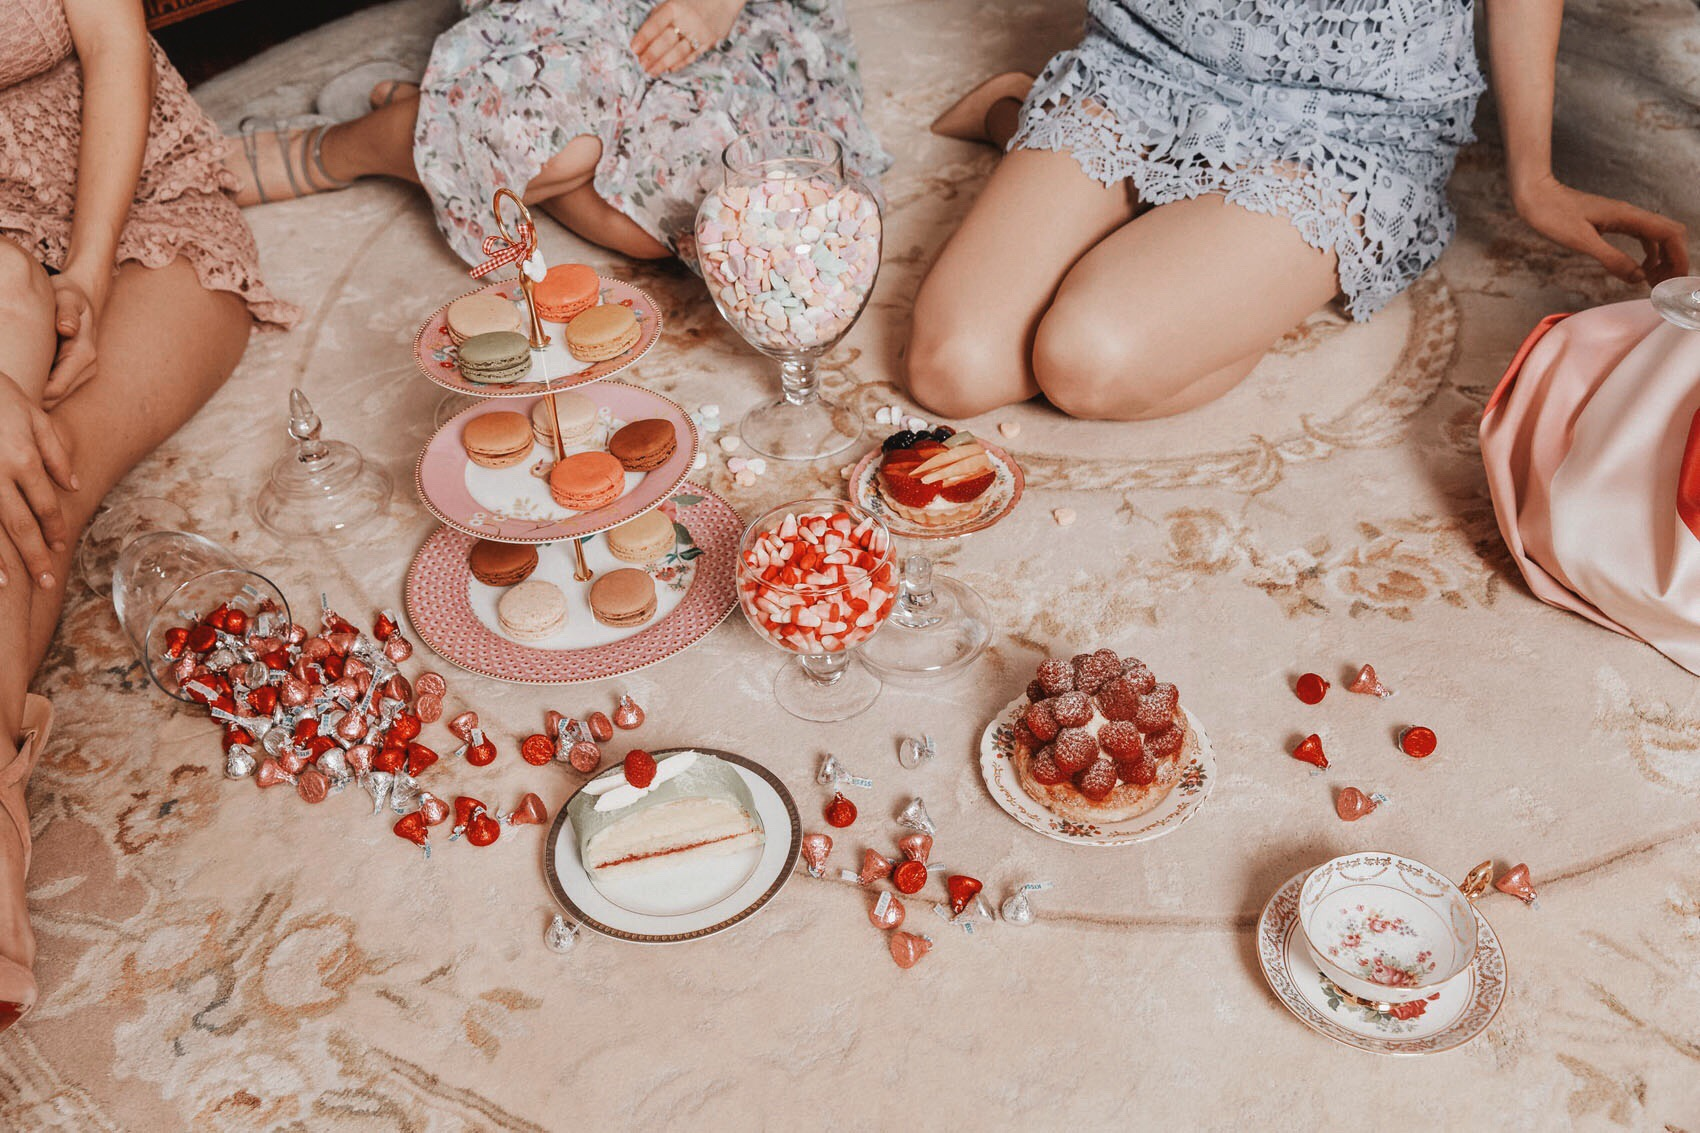 Valentine's Day Tea Party, Viktor Benes Bakery, Amara Cake Stand